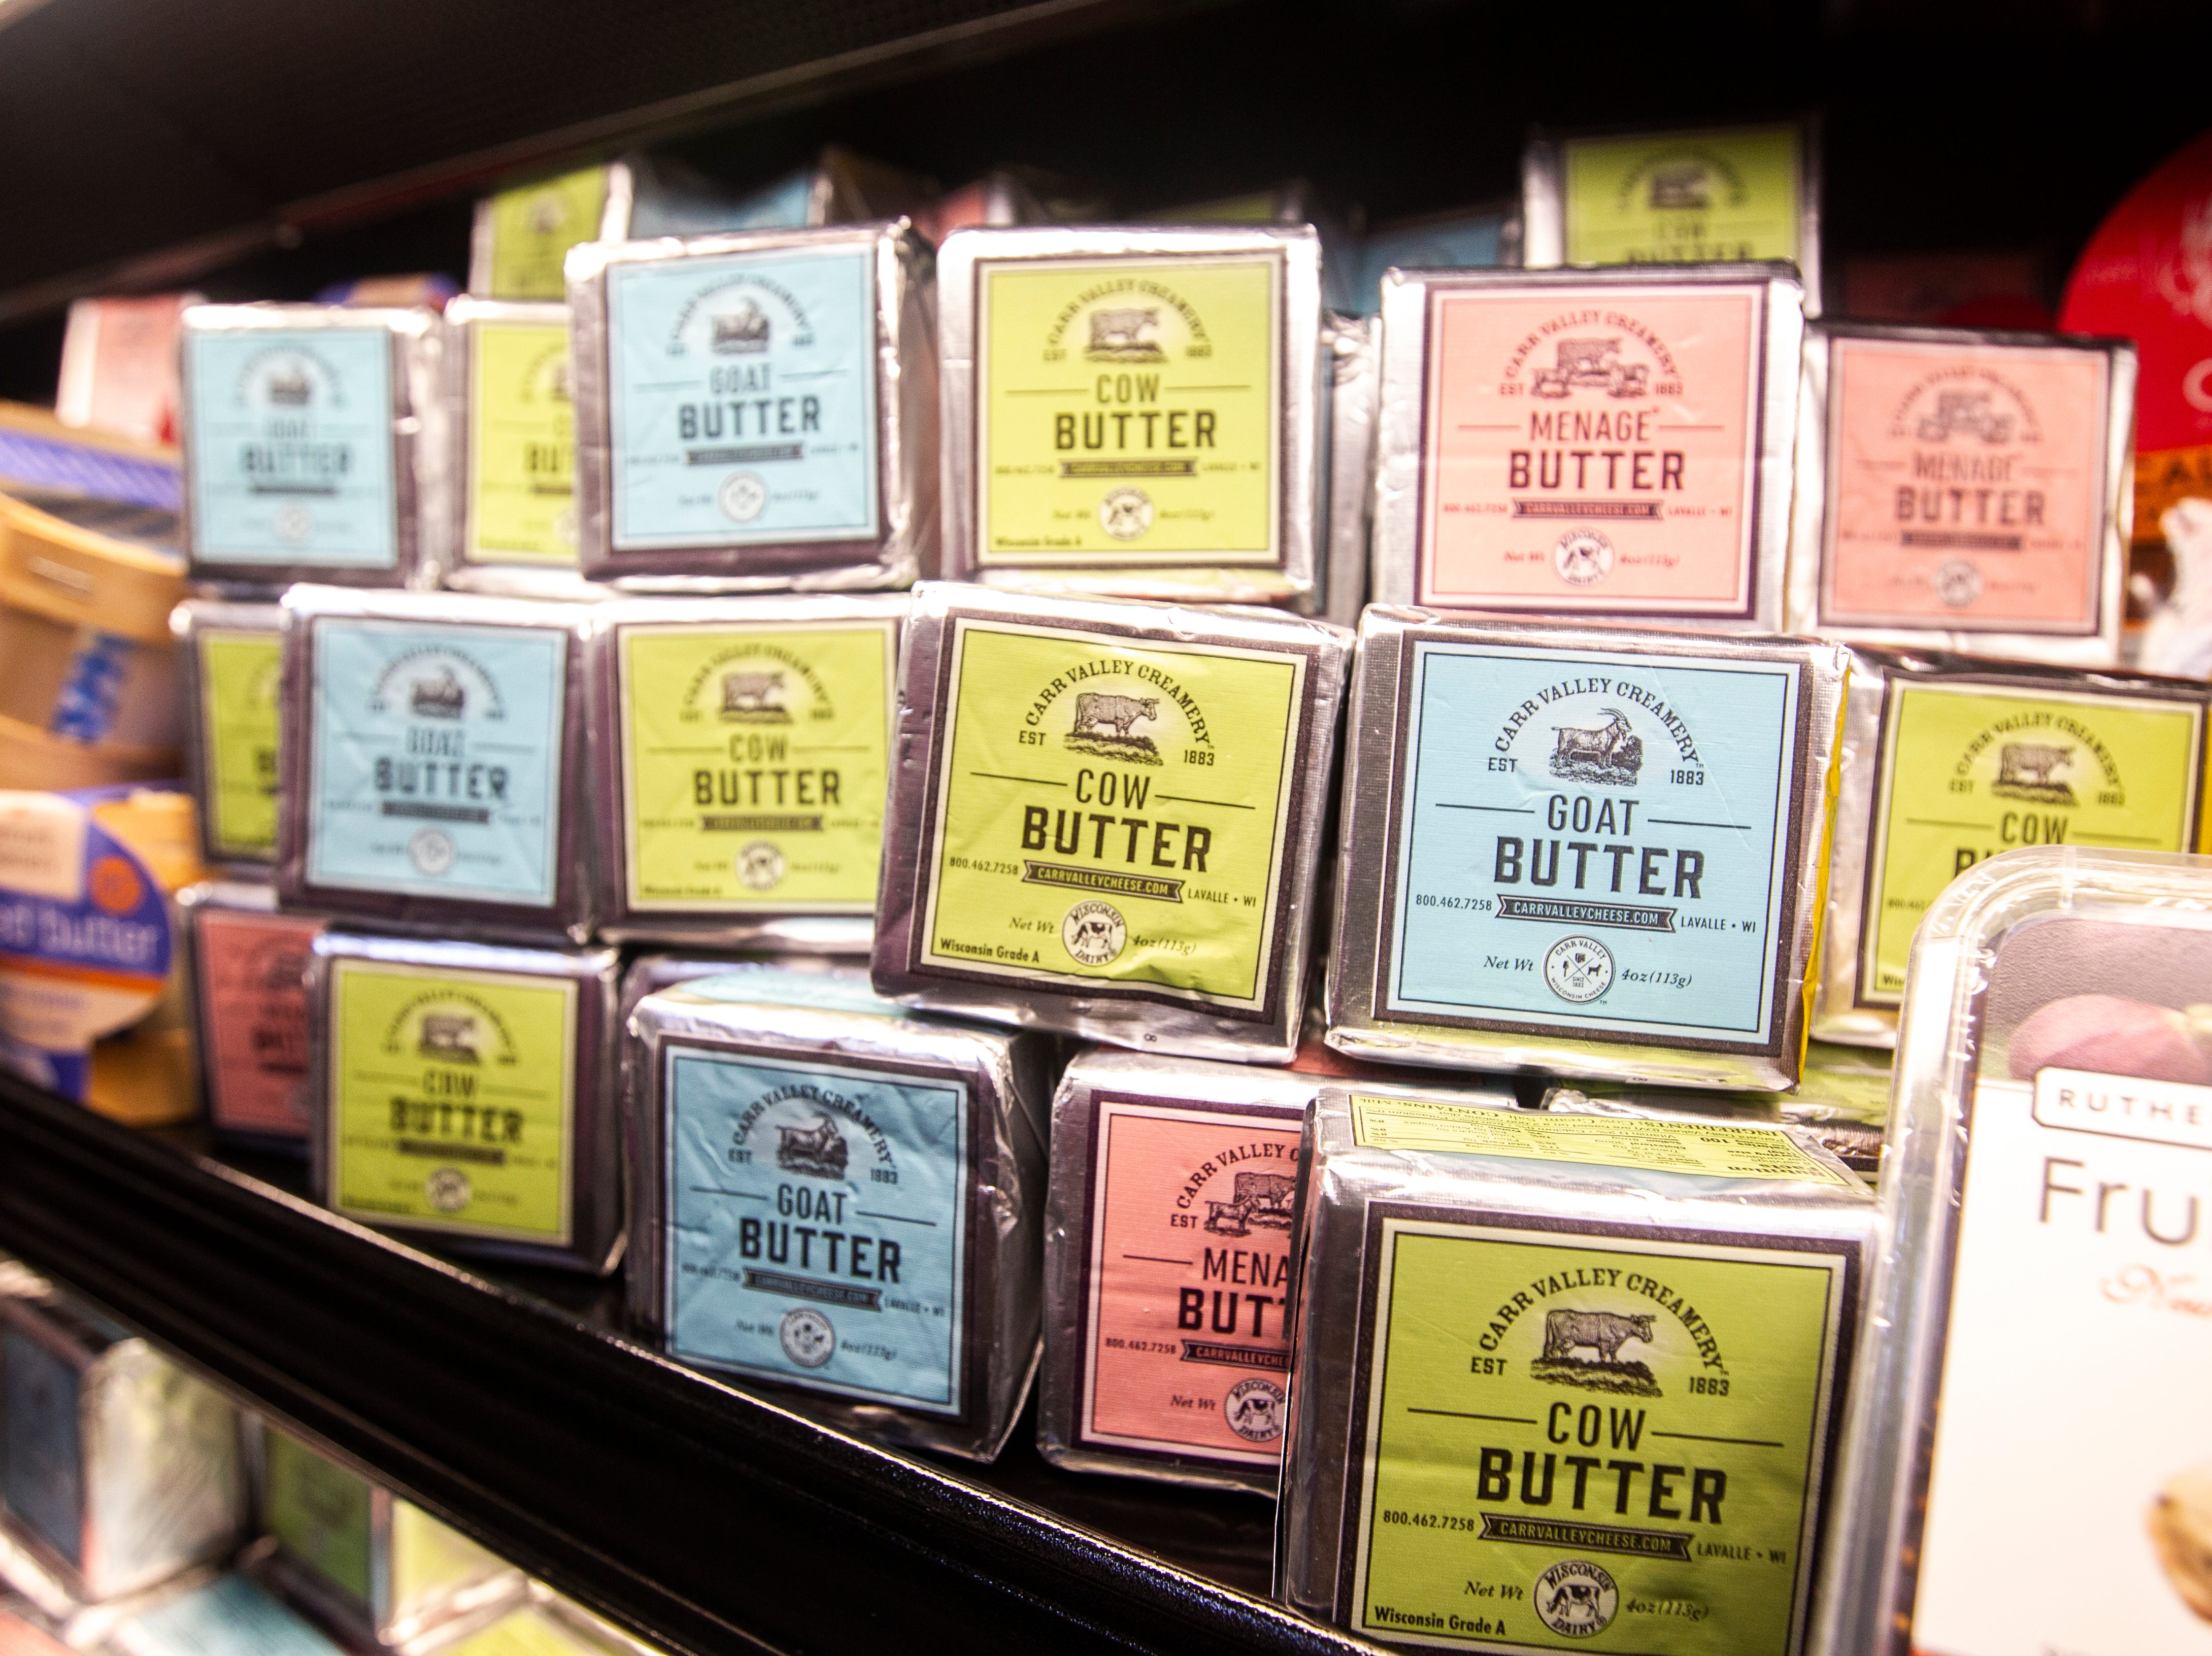 Butter varieties are seen at a new Hy-Vee on Monday, Oct. 15, 2018, along Crosspark Road in Coralville, Iowa.